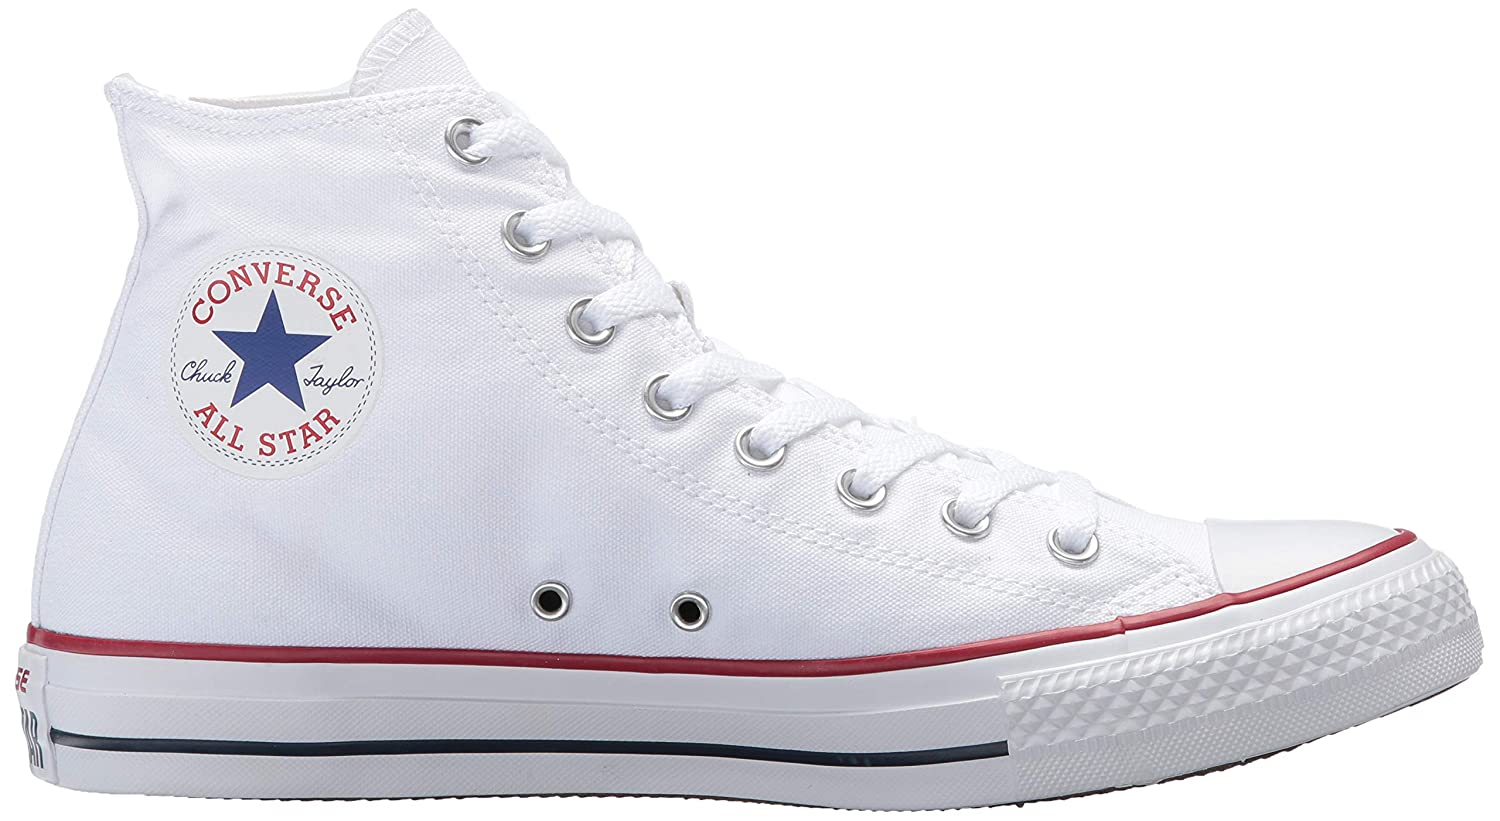 Converse AS Hi Can Can Can charcoal 1J793 Unisex-Erwachsene Turnschuhe  790545